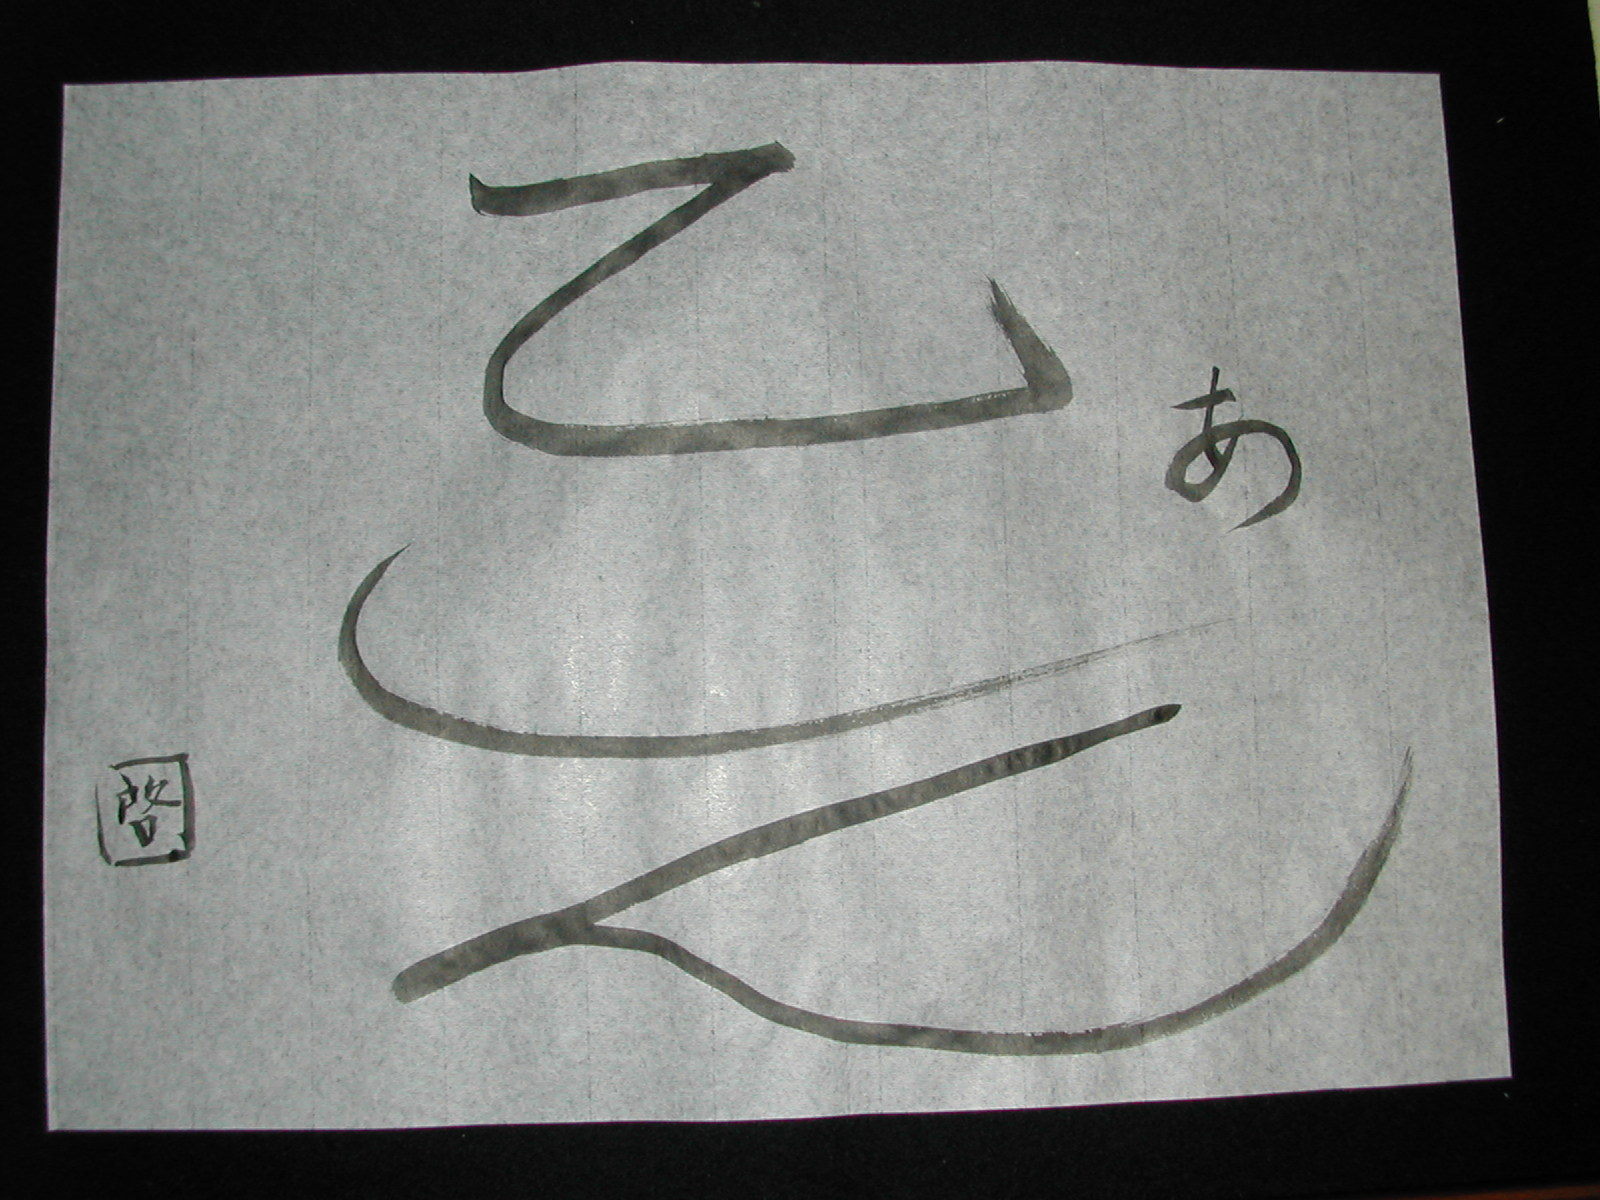 How To Write Good Morning In Japanese Hiragana : Keiko amano s zacl and ashok in kana shodo